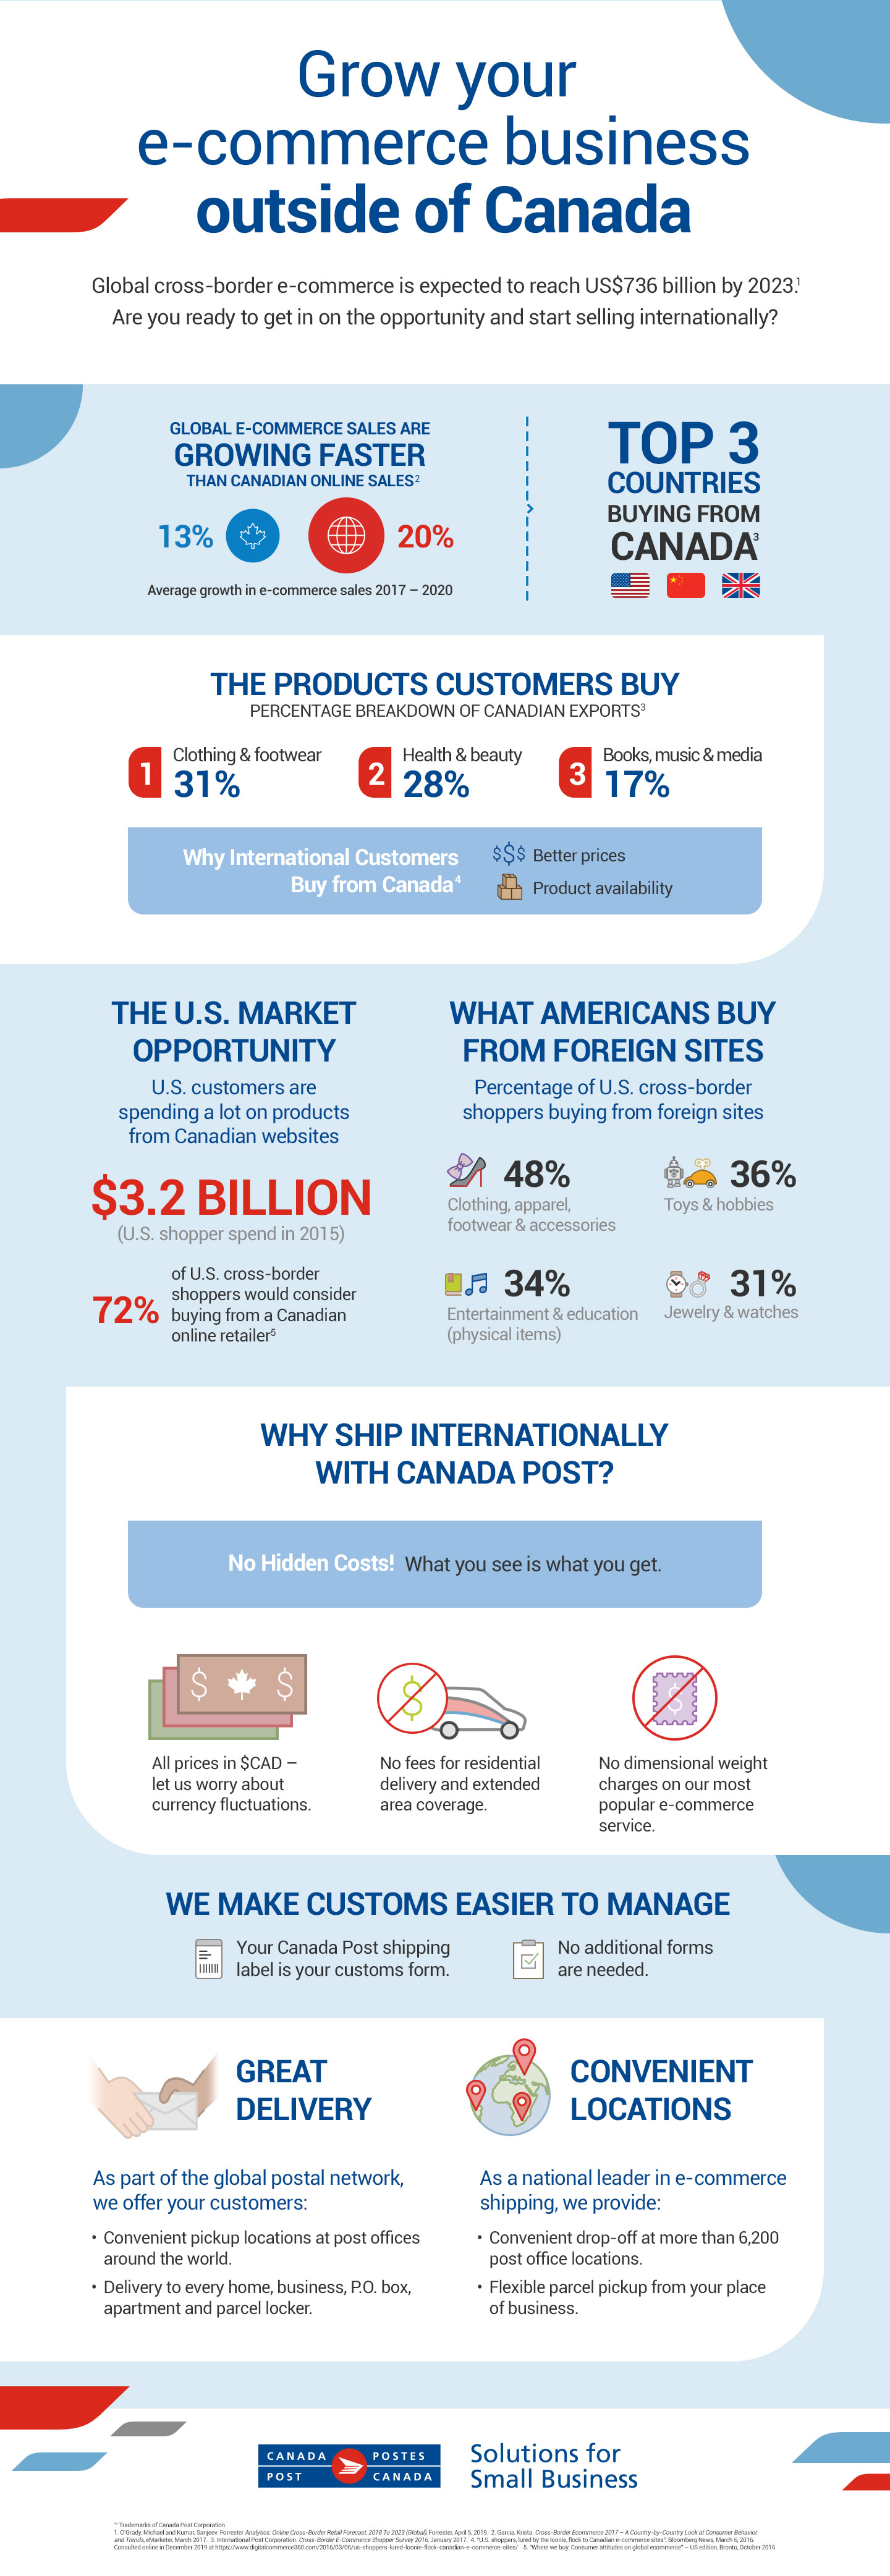 "Title: Grow your e-commerce business outside of Canada.   Global cross-border e-commerce is expected to reach US$736 billion by 2023.(Source #1) Global e-commerce sales are growing faster than Canadian online sales: 20 per cent versus 13 per cent average growth between 2017 and 2020.(Source #2)  The top three countries buying online from Canada are the U.S., China and the United Kingdom.(Source #3)  31 per cent of Canadian exports are clothing and footwear; 28 per cent are health and beauty products; and 17 per cent are books, music and media.(Source #3)  International consumers buy from Canada because we have better prices and product availability.(Source #4)  U.S. customers spent $3.2 billion on Canadian websites in 2015. 72 per cent of U.S. cross-border shoppers would consider buying from a Canadian online retailer.(Source #5)  What Americans buy from foreign sites: 48 per cent buy clothing, apparel, footwear and accessories; 36 per cent buy toys and hobby supplies; 34 per cent buy entertainment and education (physical items); and 31 per cent buy jewelry and watches.   Reasons why you should ship internationally with Canada Post: No hidden costs! What you see is what you get. All prices are in $CAD, there are no fees for residential delivery and extended area coverage, and there are no dimensional weight charges on our most popular e-commerce service.   Canada Post makes customs easier to manage: Your Canada Post shipping label is your customs form, and no additional forms are needed.   As part of the global postal network, we offer your customers: Convenient pickup at post offices around the world; and delivery to every home, business, P.O. box, apartment and parcel locker. As a national leader in e-commerce shipping, we provide: Convenient drop-off at more than 6,200 post office locations; and flexible parcel pickup from your place of business.   Sources: #1: O'Grady, Michael and Kumar, Sanjeev. Forrester Analytics: Online Cross-Border Retail Forecast, 2018 to 2023 (Global), Forrester, April 5, 2019.  #2: Garcia, Krista. Cross-Border Ecommerce 2017 – A Country-by-Country Look at Consumer Behavior and Trends, eMarketer, March 2017.  #3: International Post Corporation. Cross-Border E-commerce Shopper Survey 2016, January 2017. #4: ""U.S. shoppers, lured by the loonie, flock to Canadian e-commerce sites"", Bloomberg News, March 6, 2016. Consulted online in December 2019 at https://www.digitalcommerce360.com/2016/ 03/06/us-shoppers-lured-loonie-flock-canadian-e-commerce-sites/.  #5: ""Where we buy: Consumer attitudes on global ecommerce"" – US edition, Bronto, October 2016."